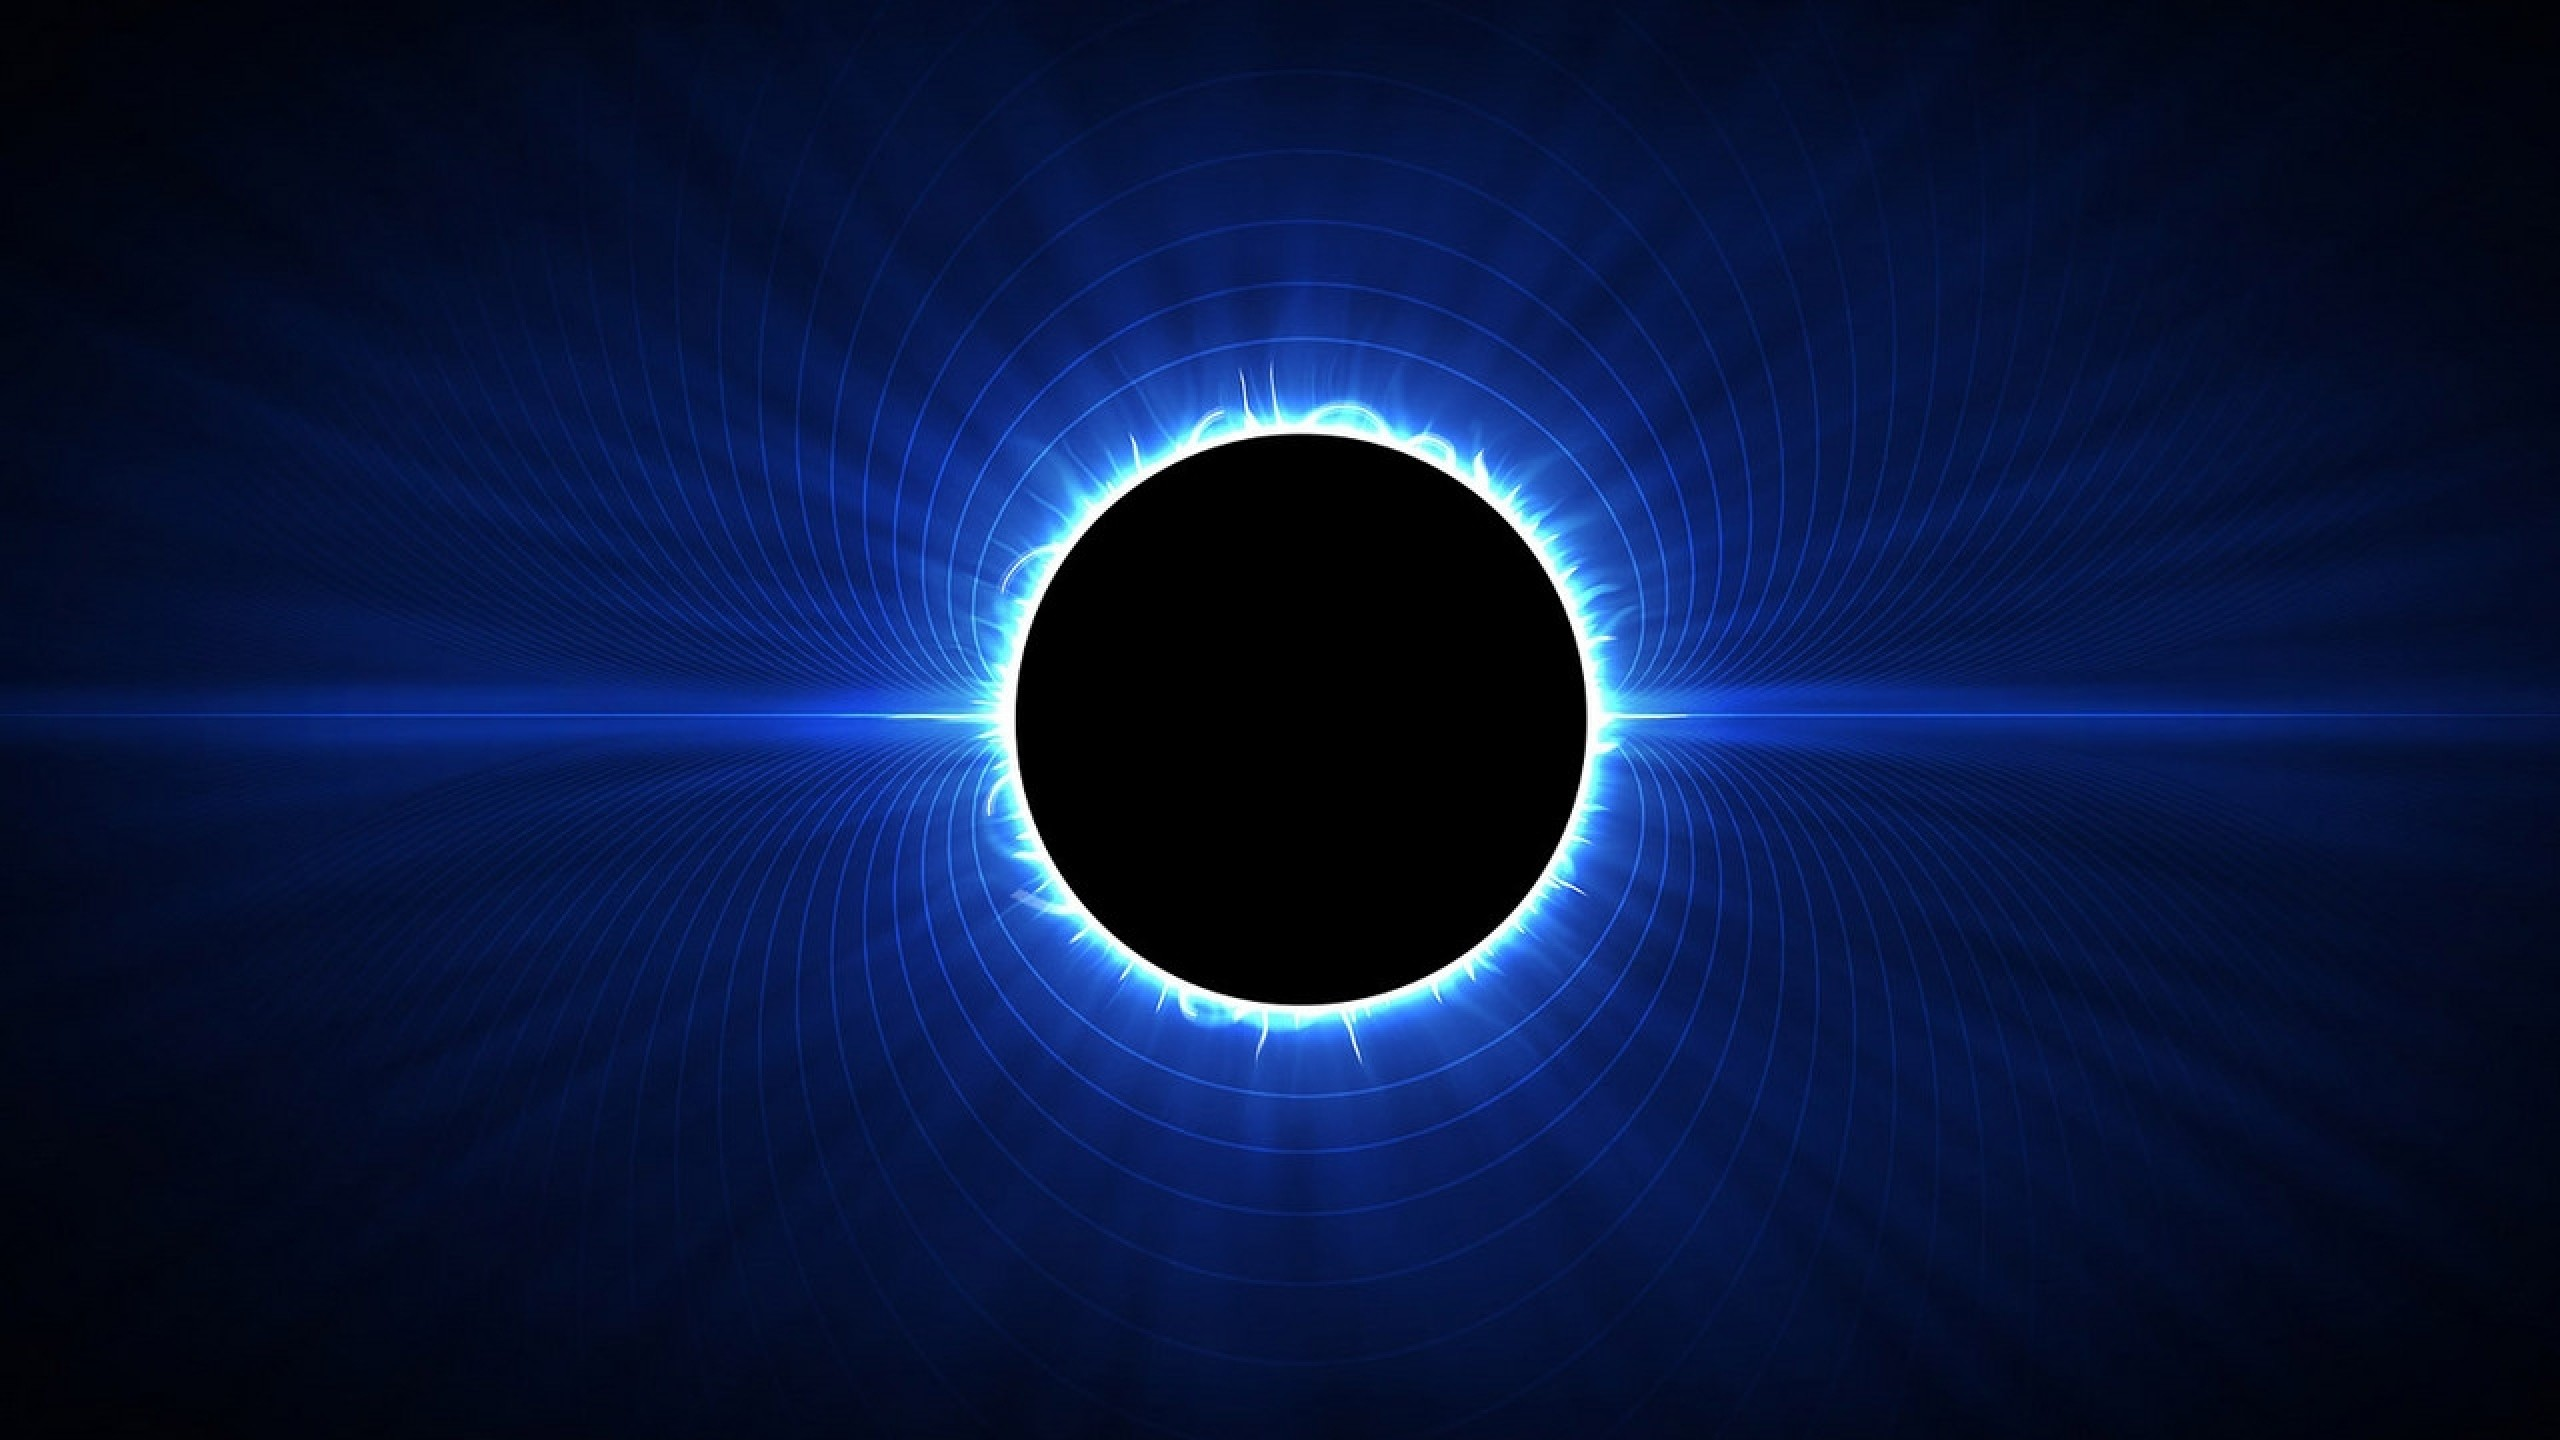 Wallpaper abstraction, eclipse, space, light, black, blue, white